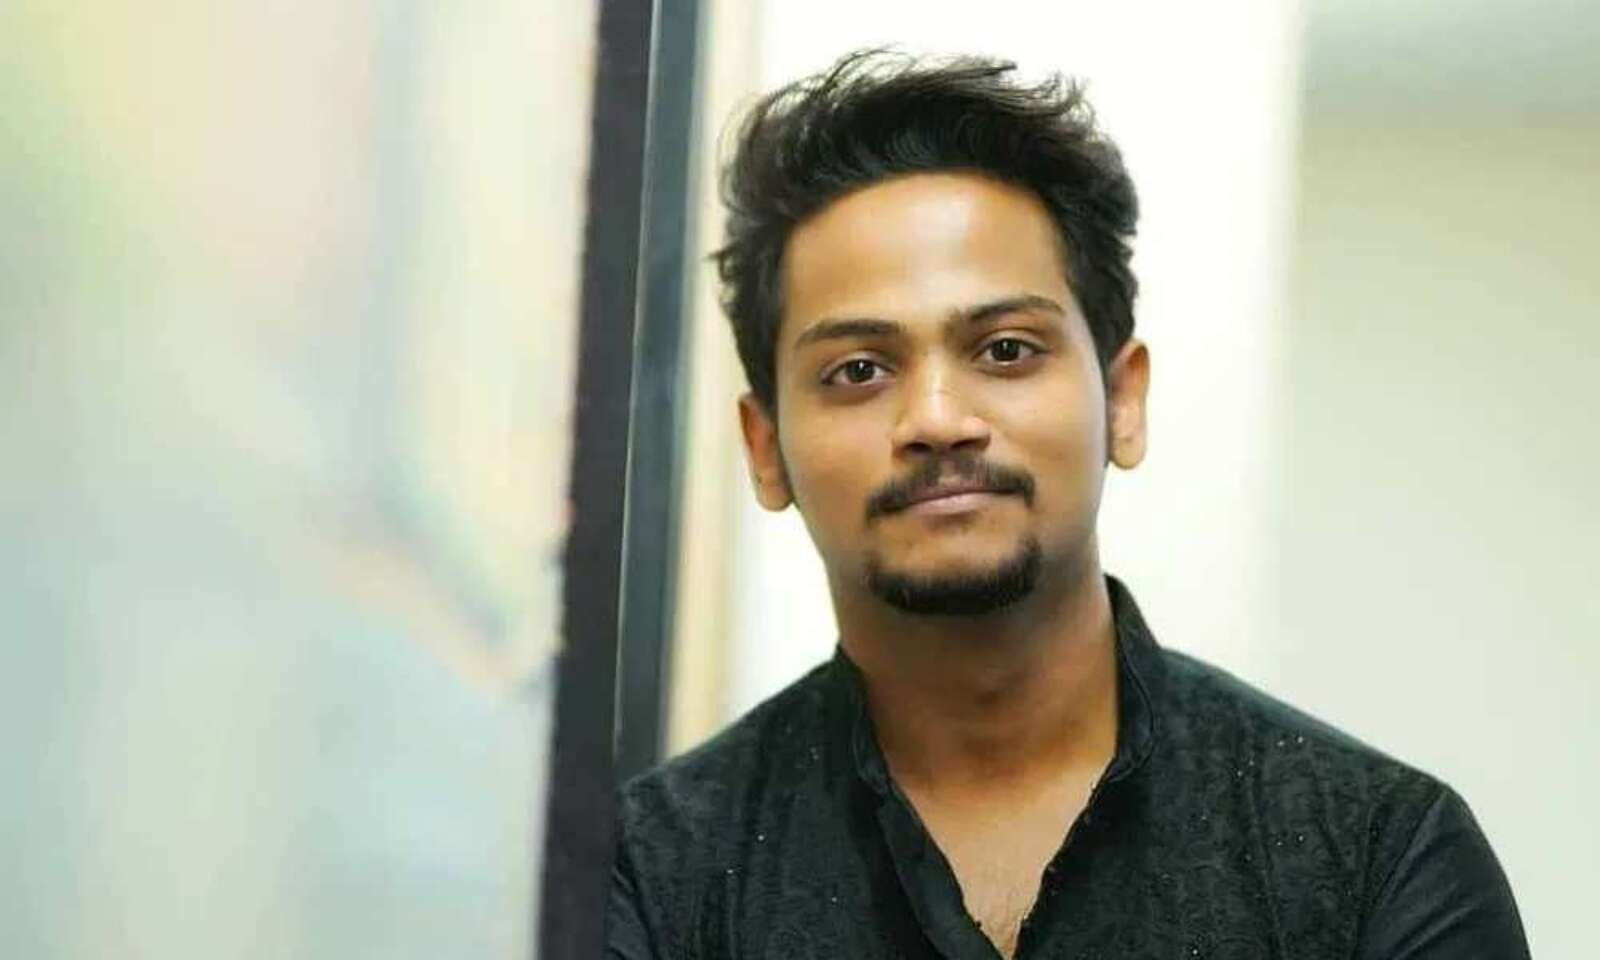 Hyderabad: YouTuber Shanmukh Jaswanth to appear before court today